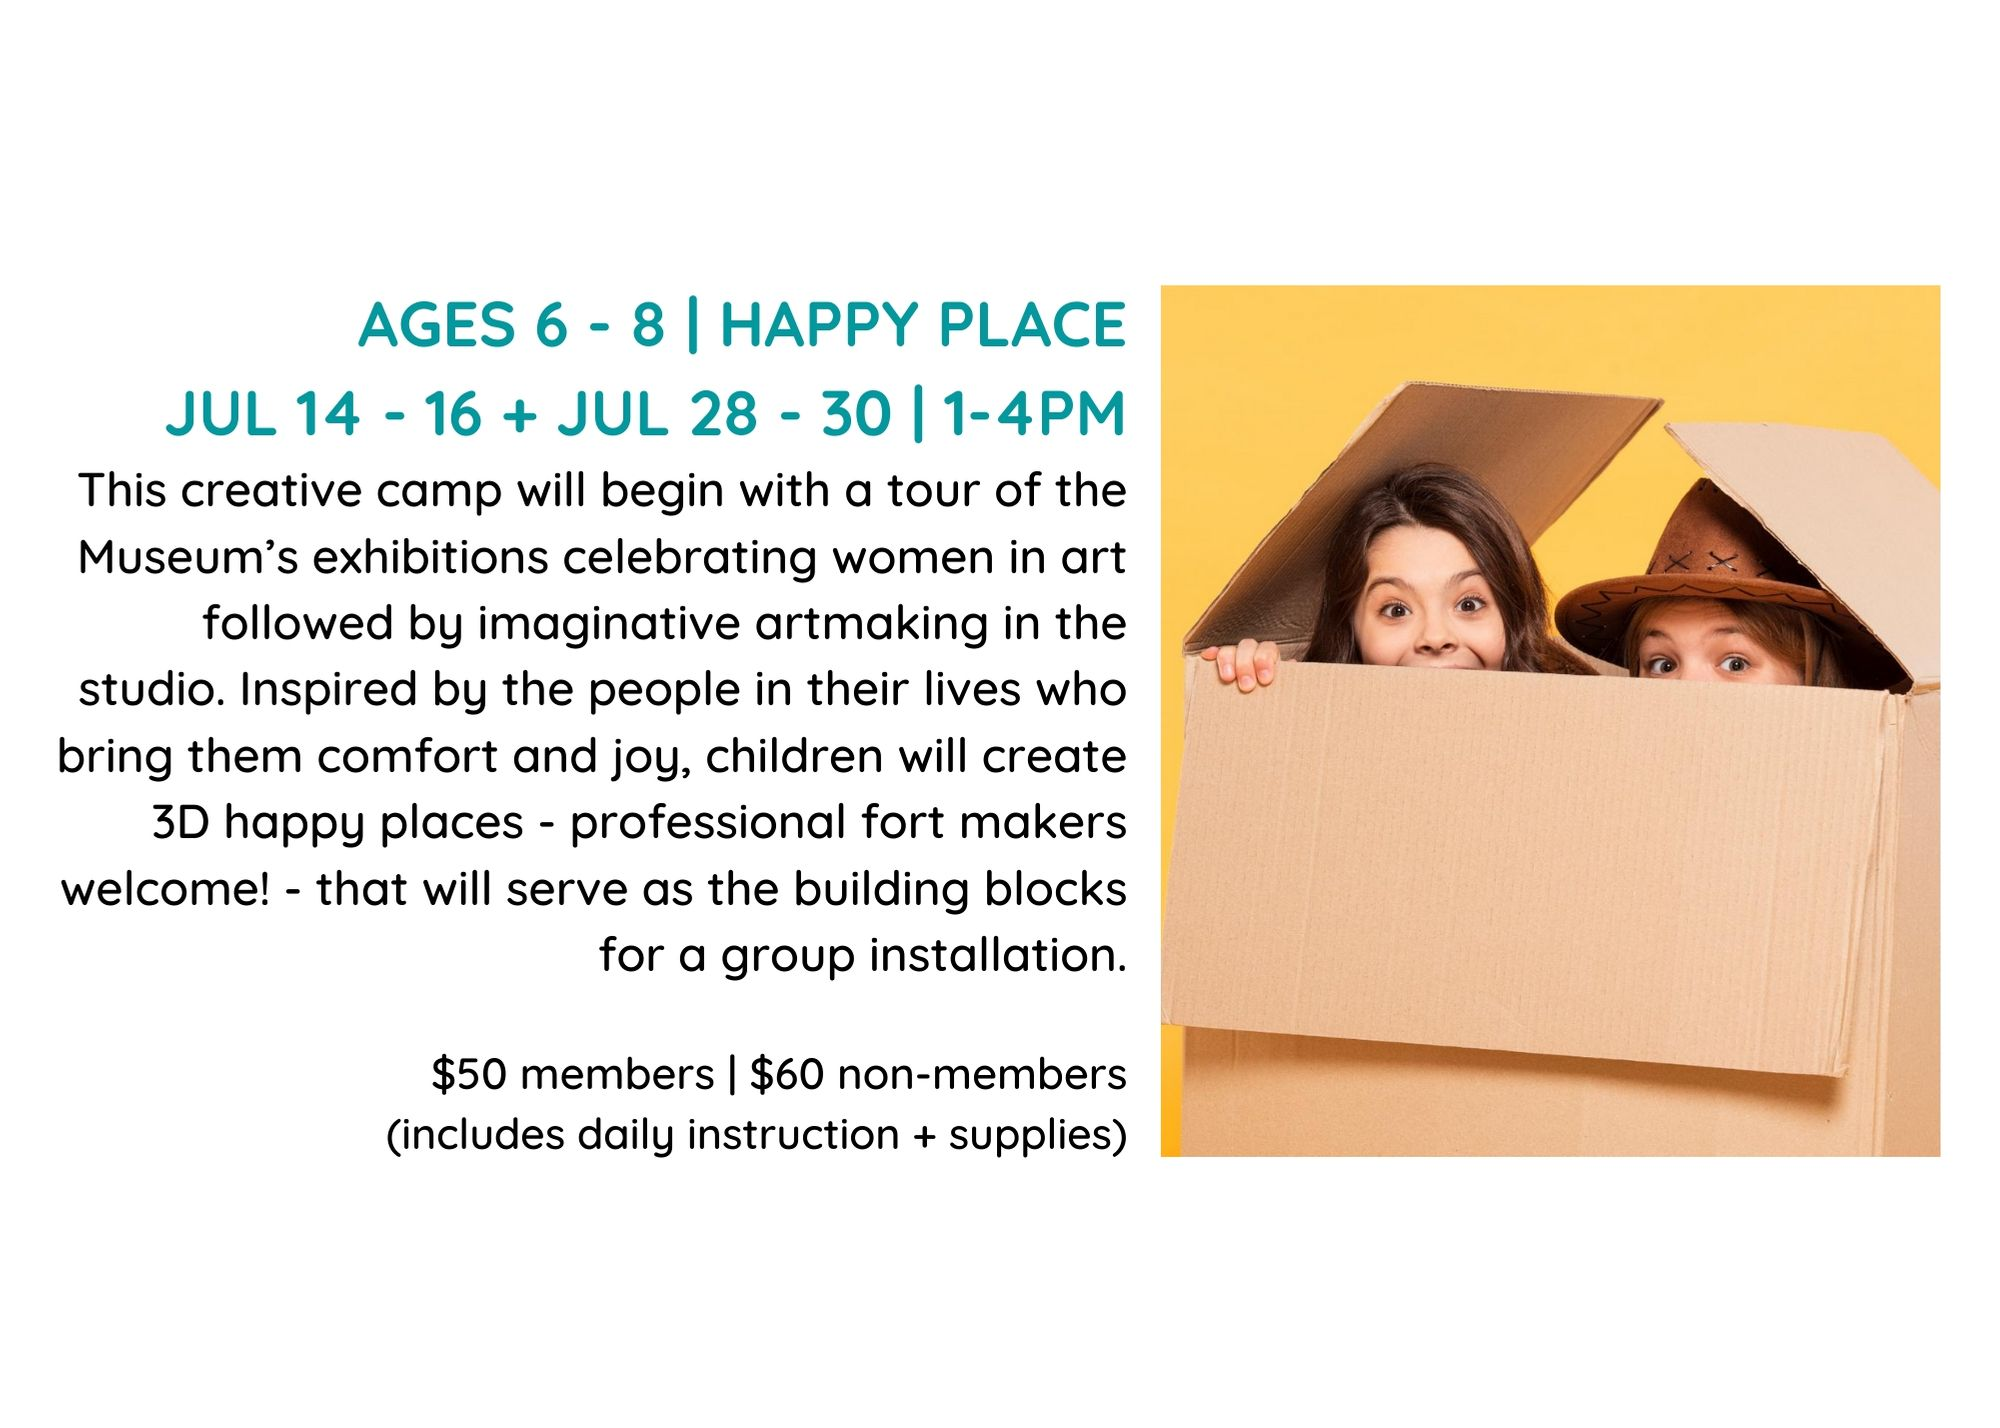 Summer Camp Ages 6-8